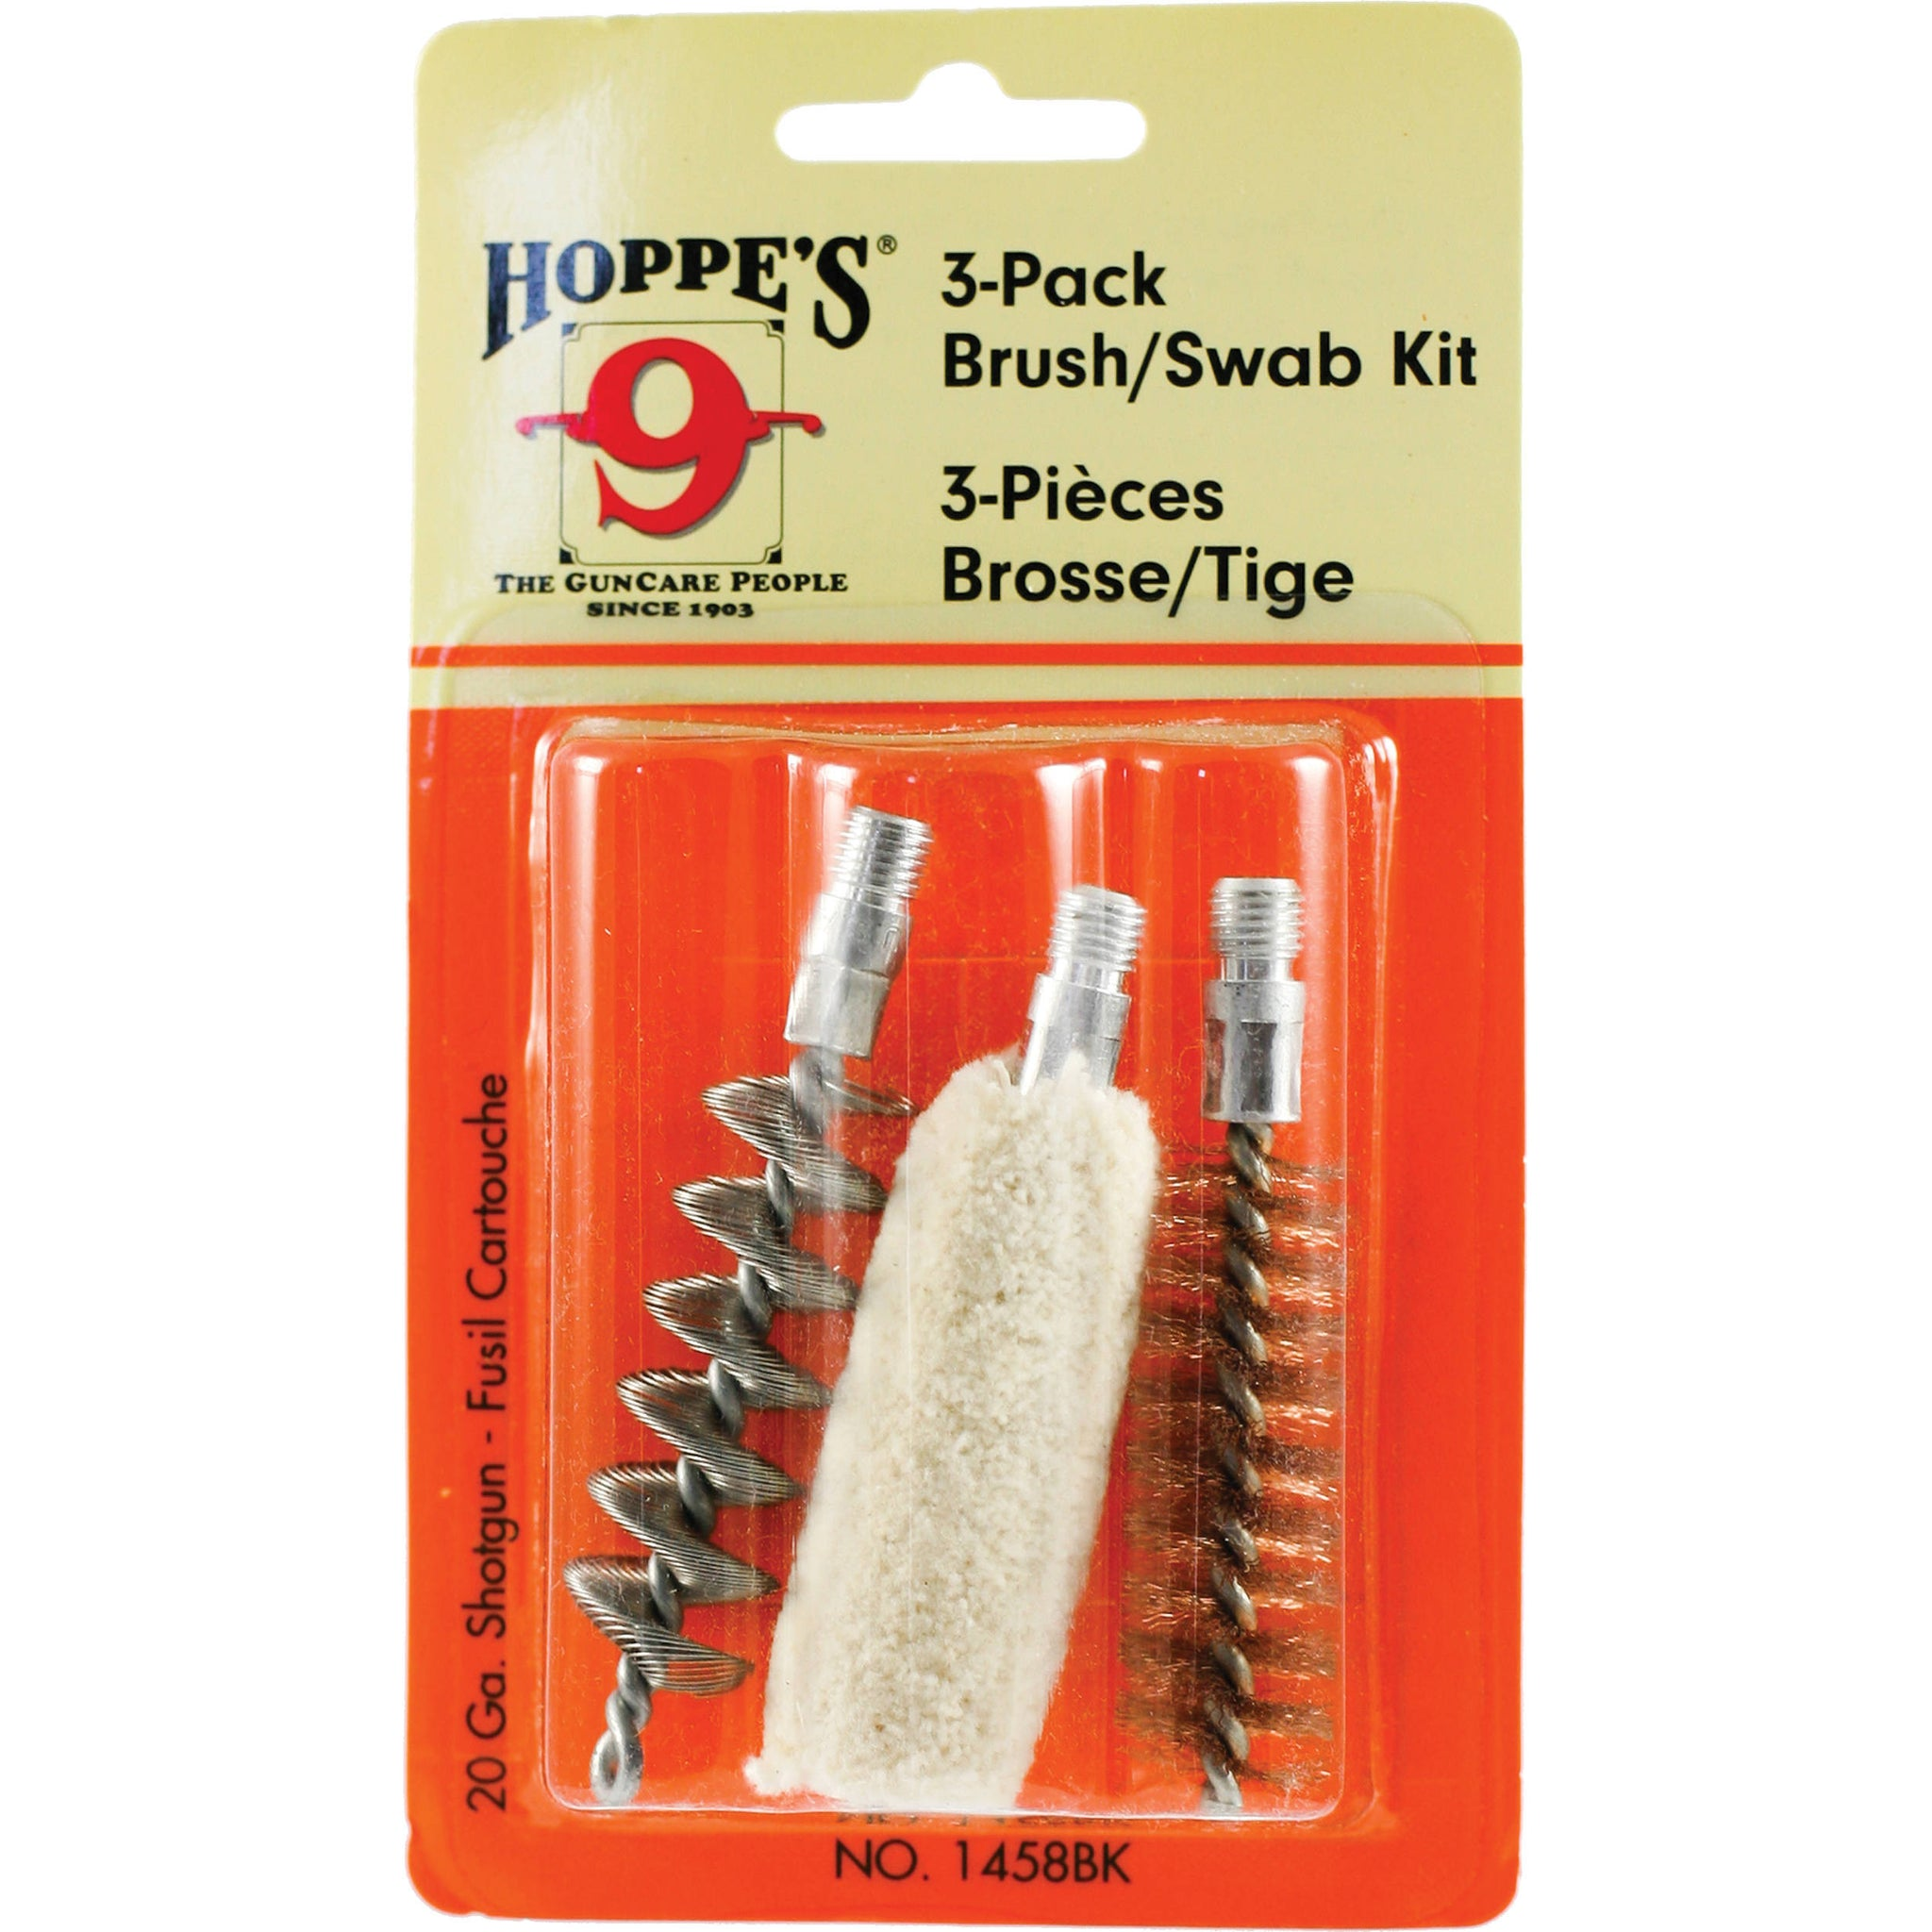 HOPPE'S 3-PACK BRUSH/SWAB KIT 20 GA-High Falls Outfitters